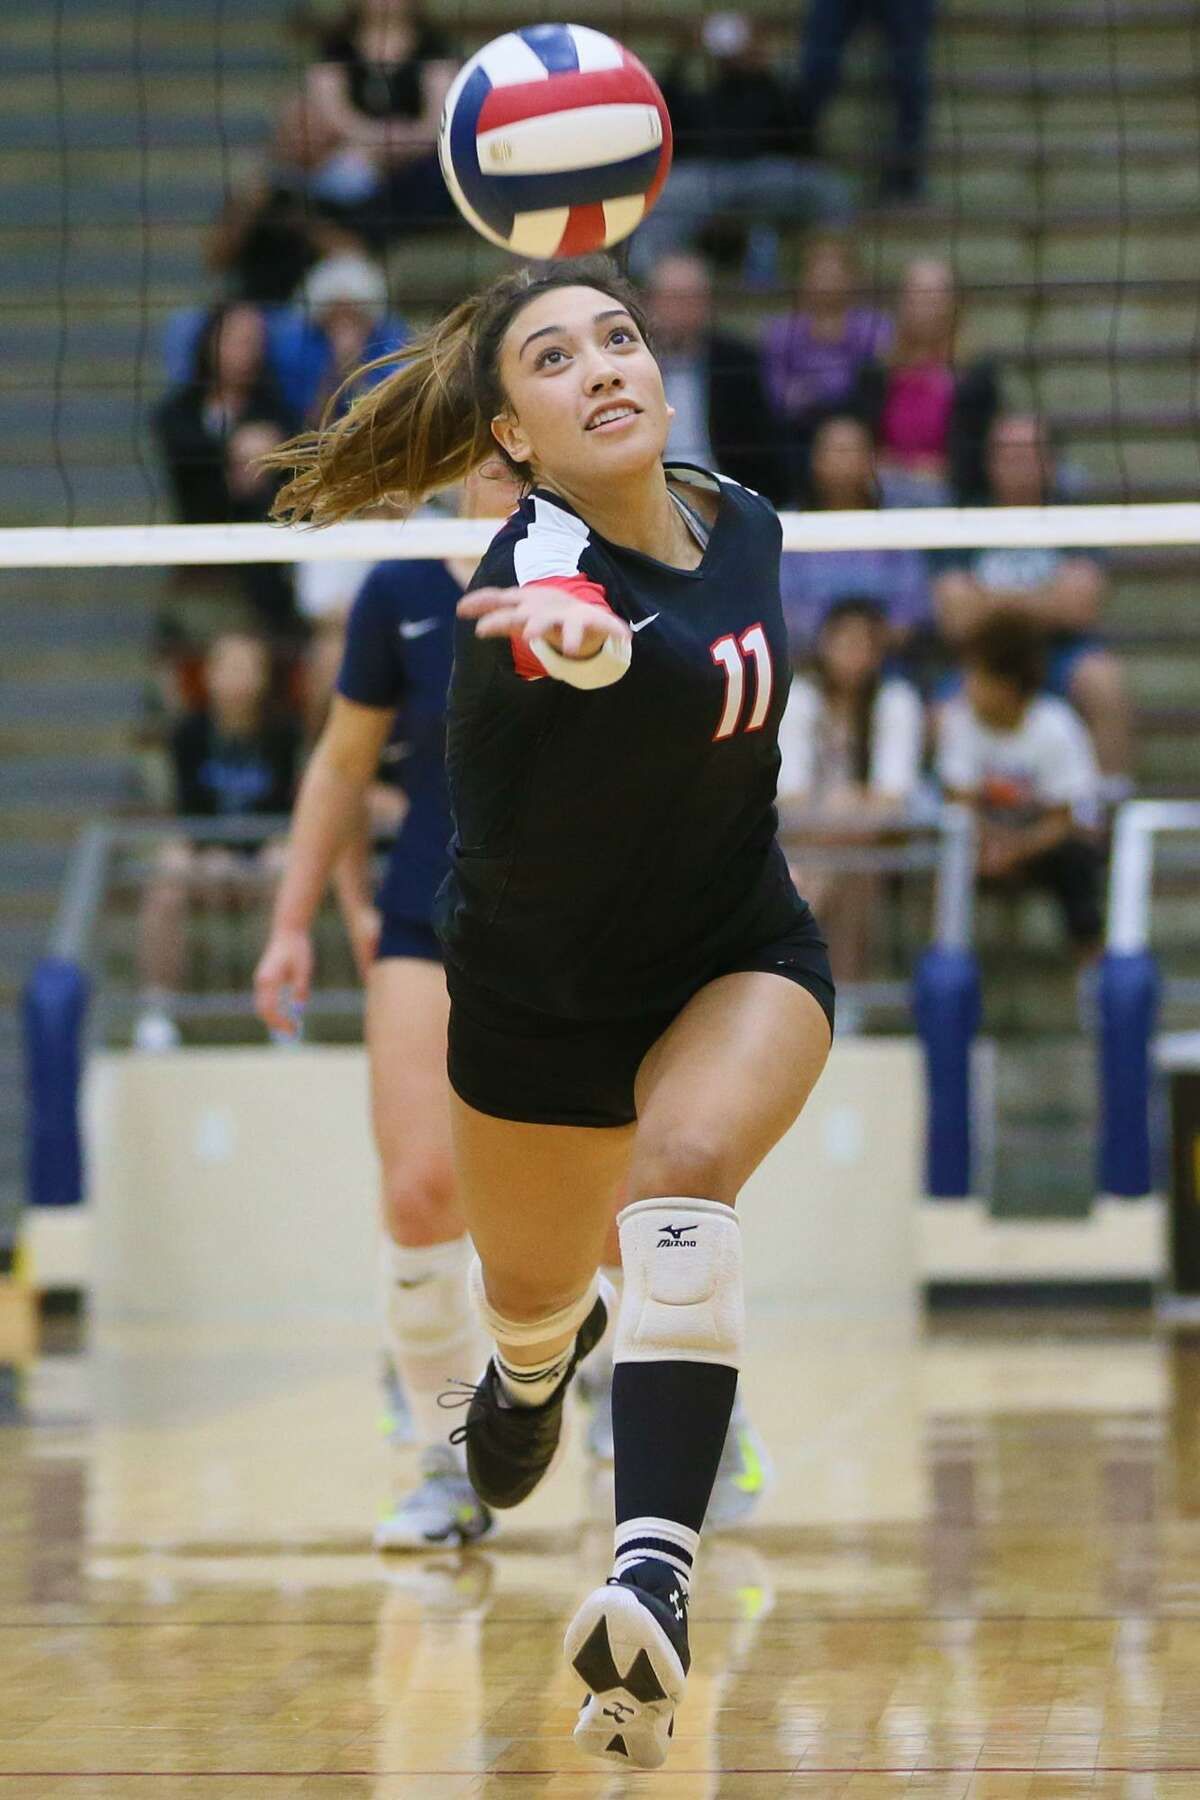 Churchill's Lourdes Gomez chases down a ball during their Class 6A third-round high school volleyball playoff match with O'Connor at the Alamo Convocation Center on Tuesday, Nov. 7, 2017. O'Connor won in five sets: 25-20, 25-27, 25-23, 25-27, 15-6. MARVIN PFEIFFER/mpfeiffer@express-news.net